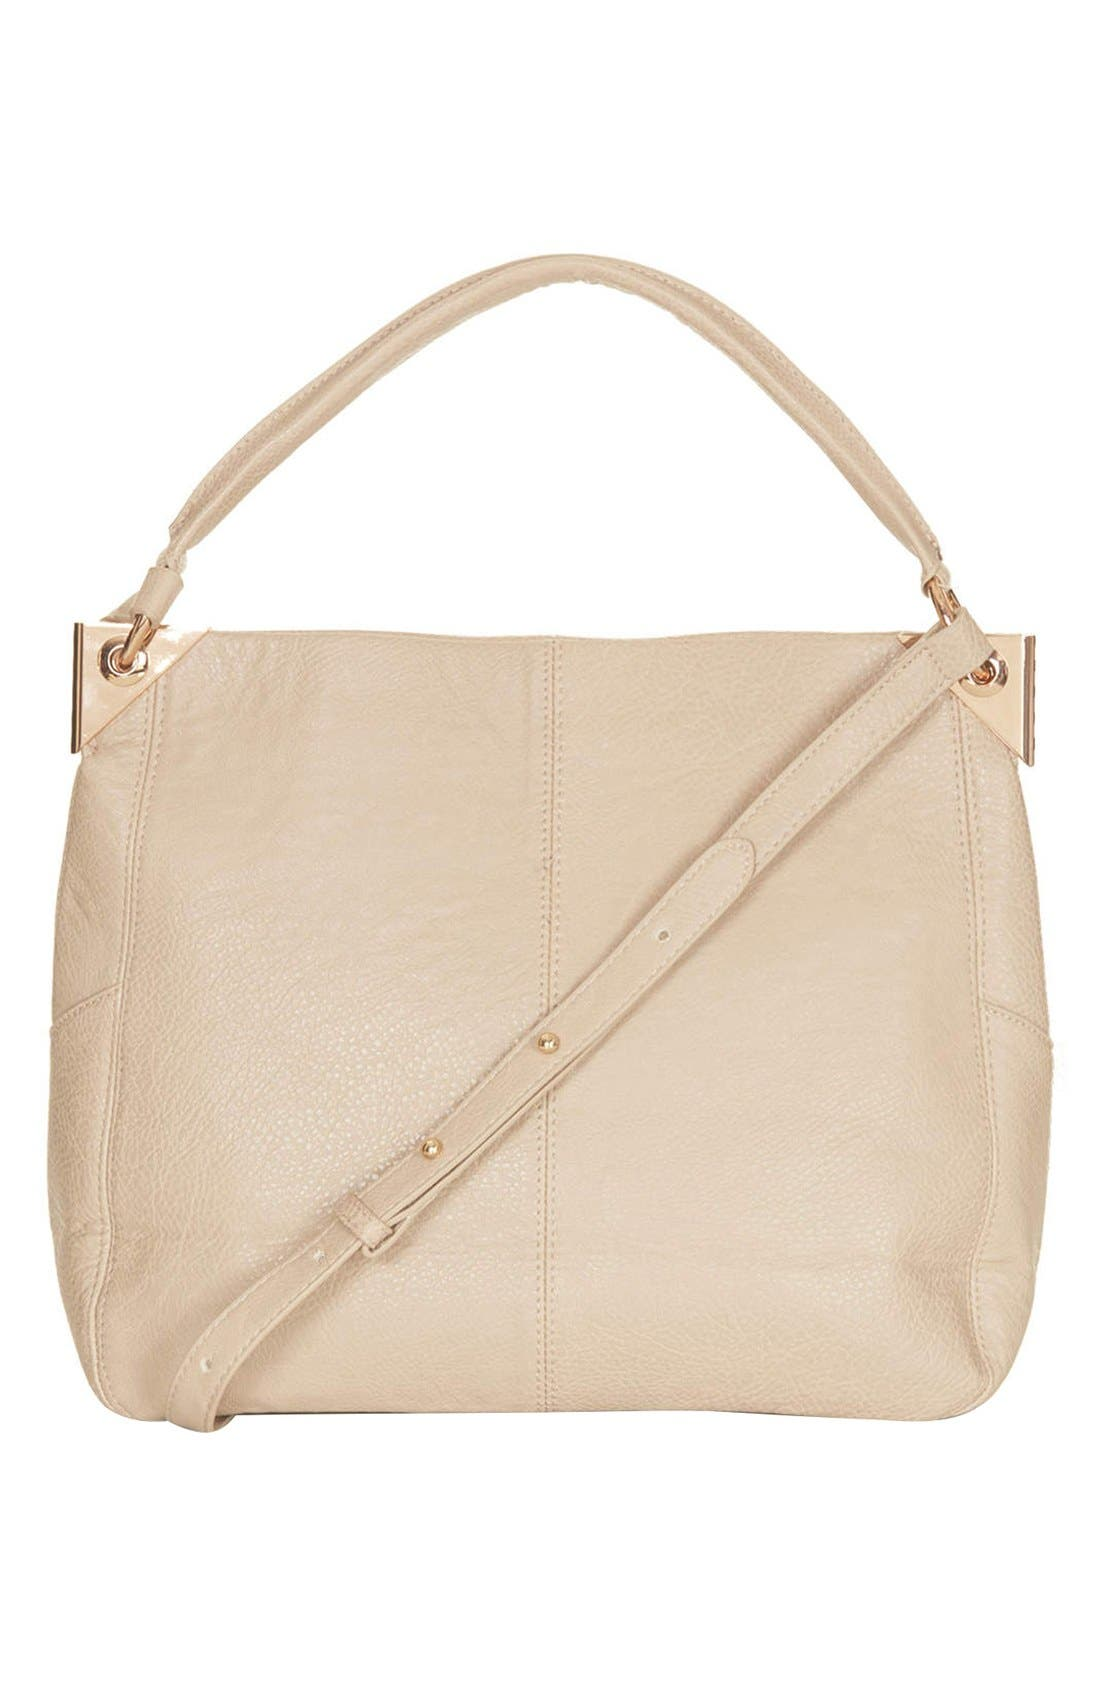 Main Image - Topshop Faux Leather Hobo Bag